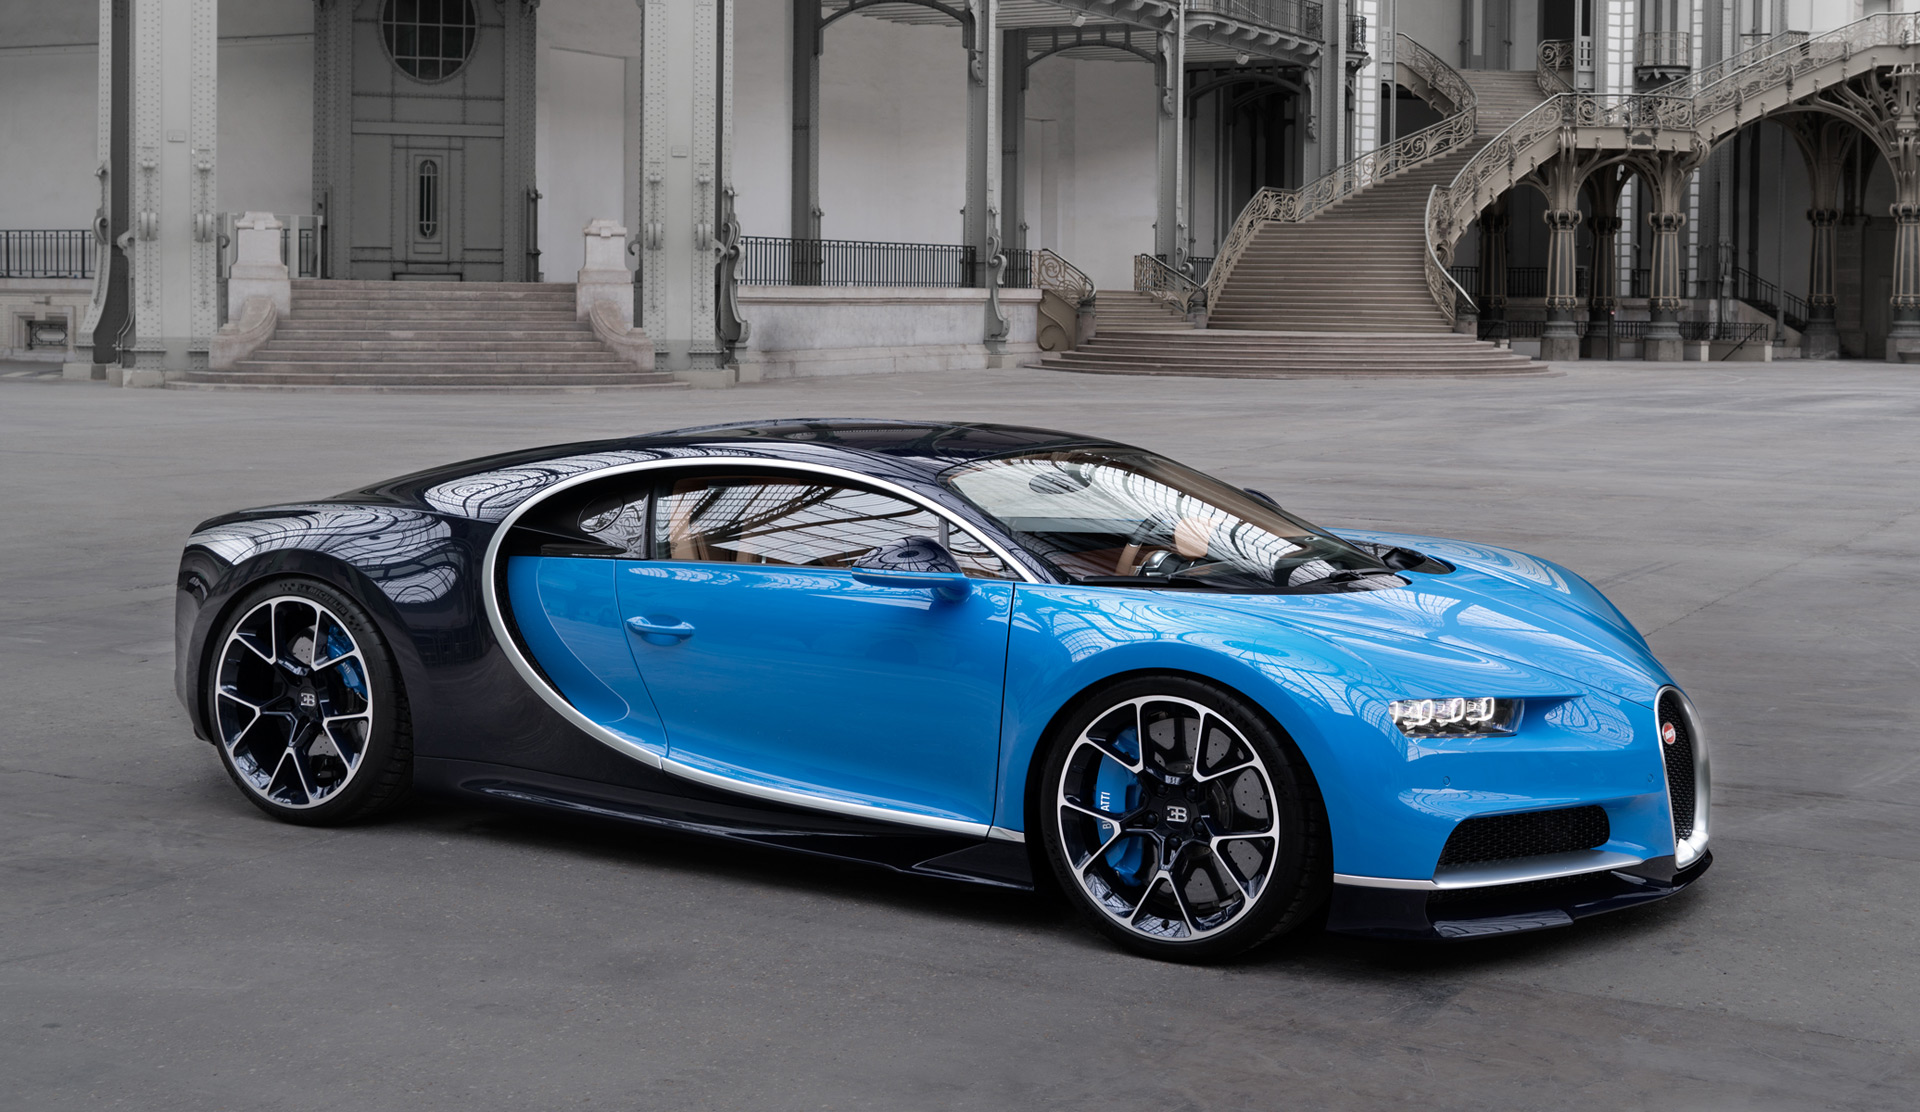 Craze For Cars Wiring Diagram Likewise Ford Model T Also 2004 Lincoln Bugatti Chiron